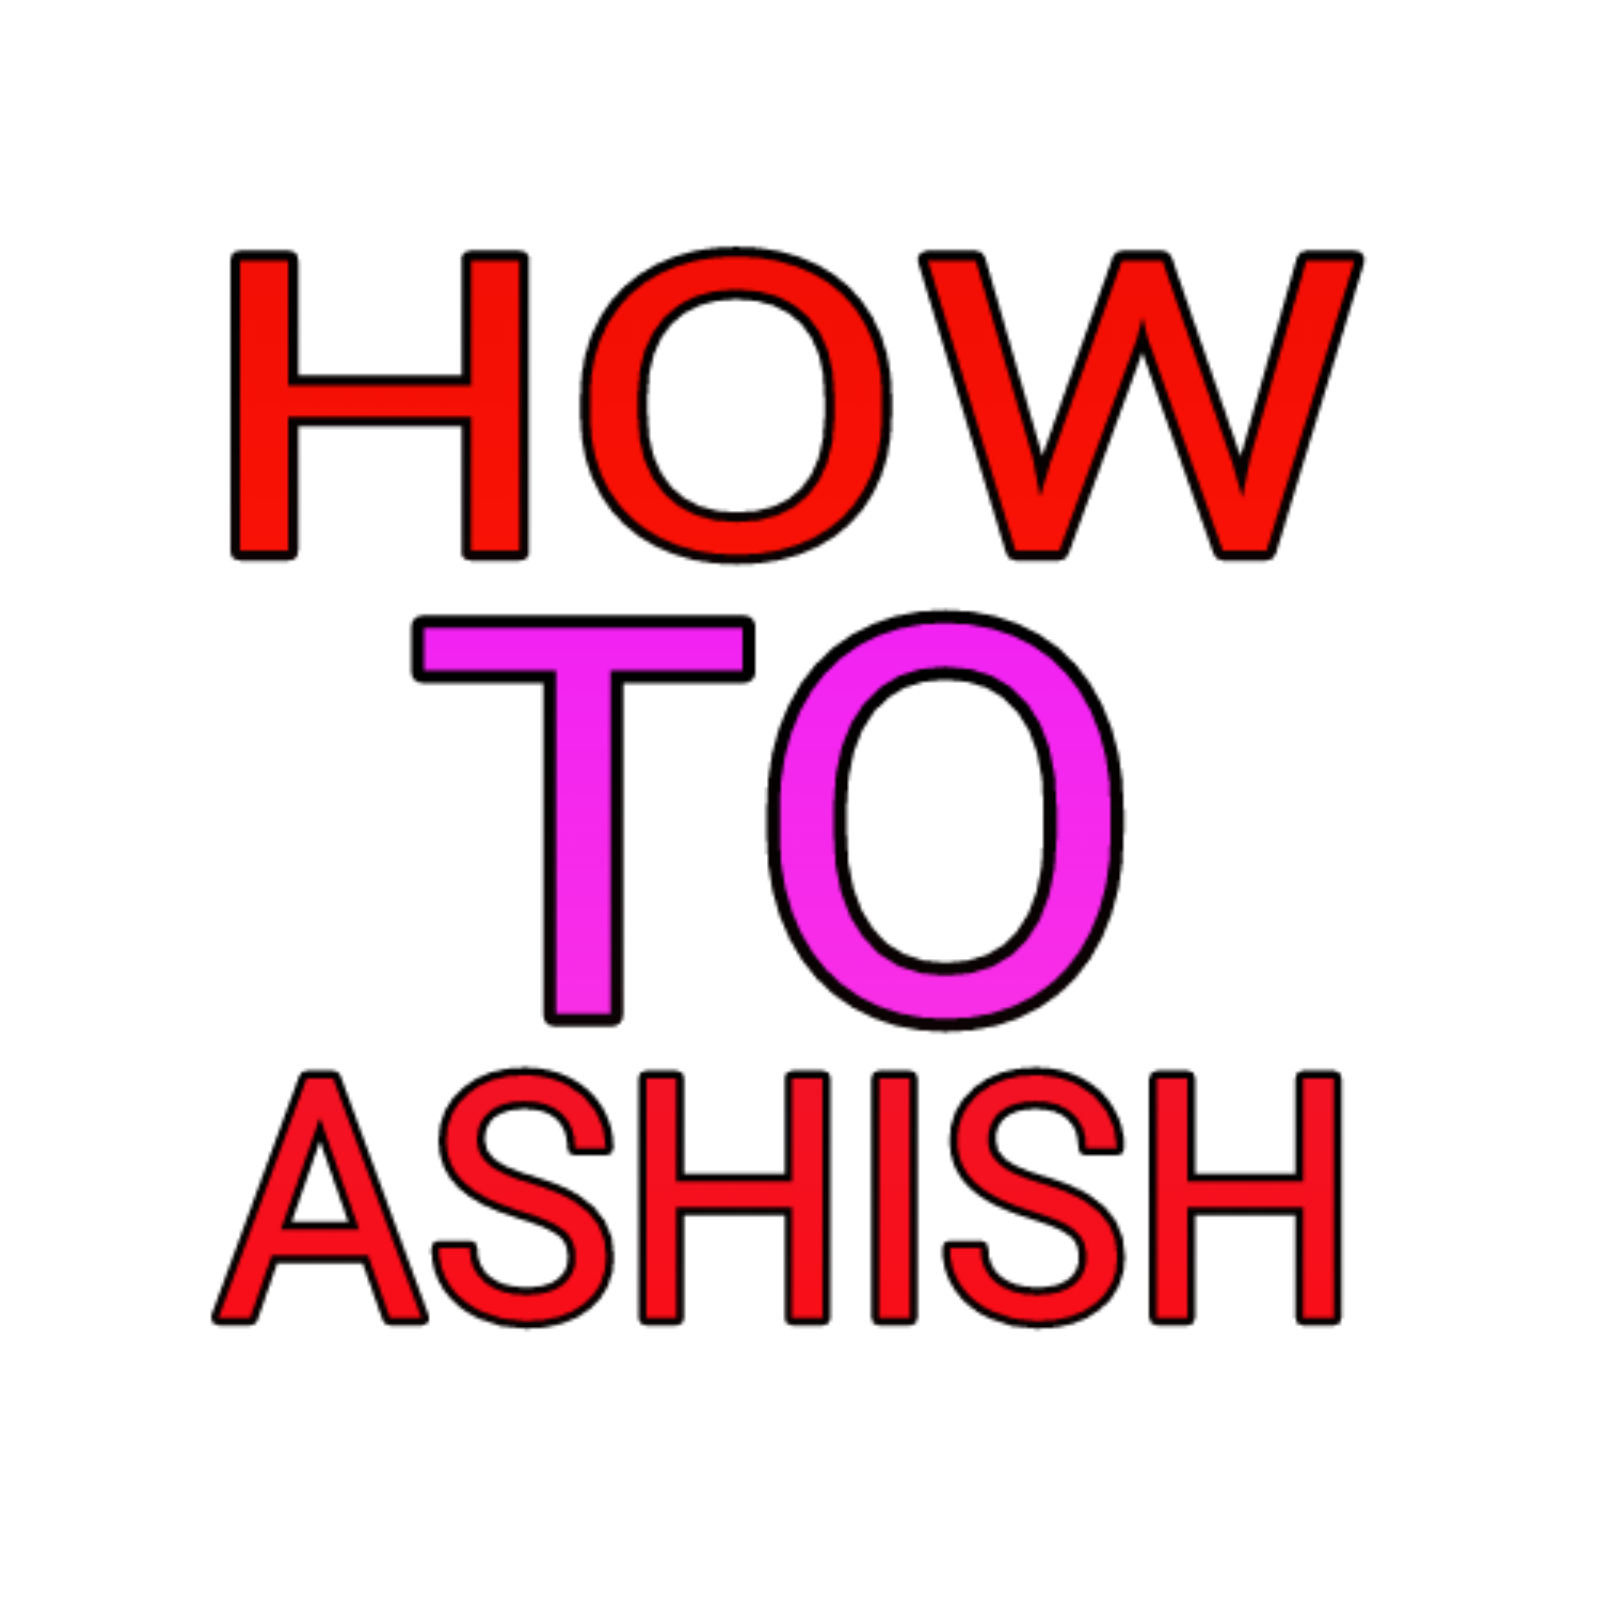 How to ashish